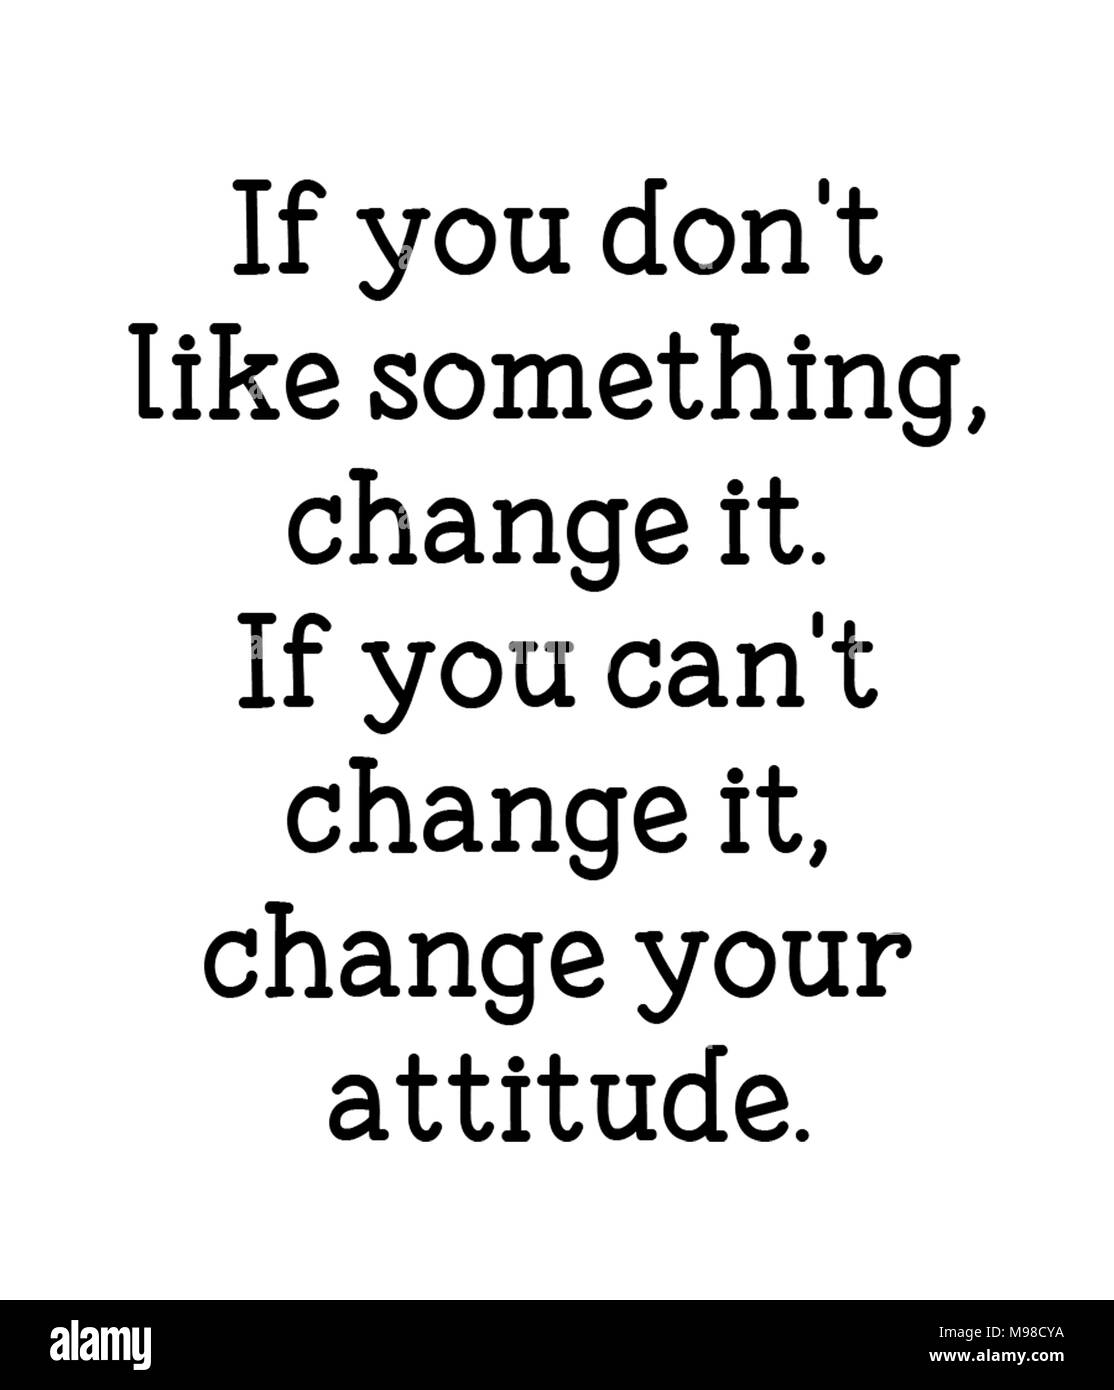 If you don't like something, change it. If you can't change it, change your attitude. - Stock Image